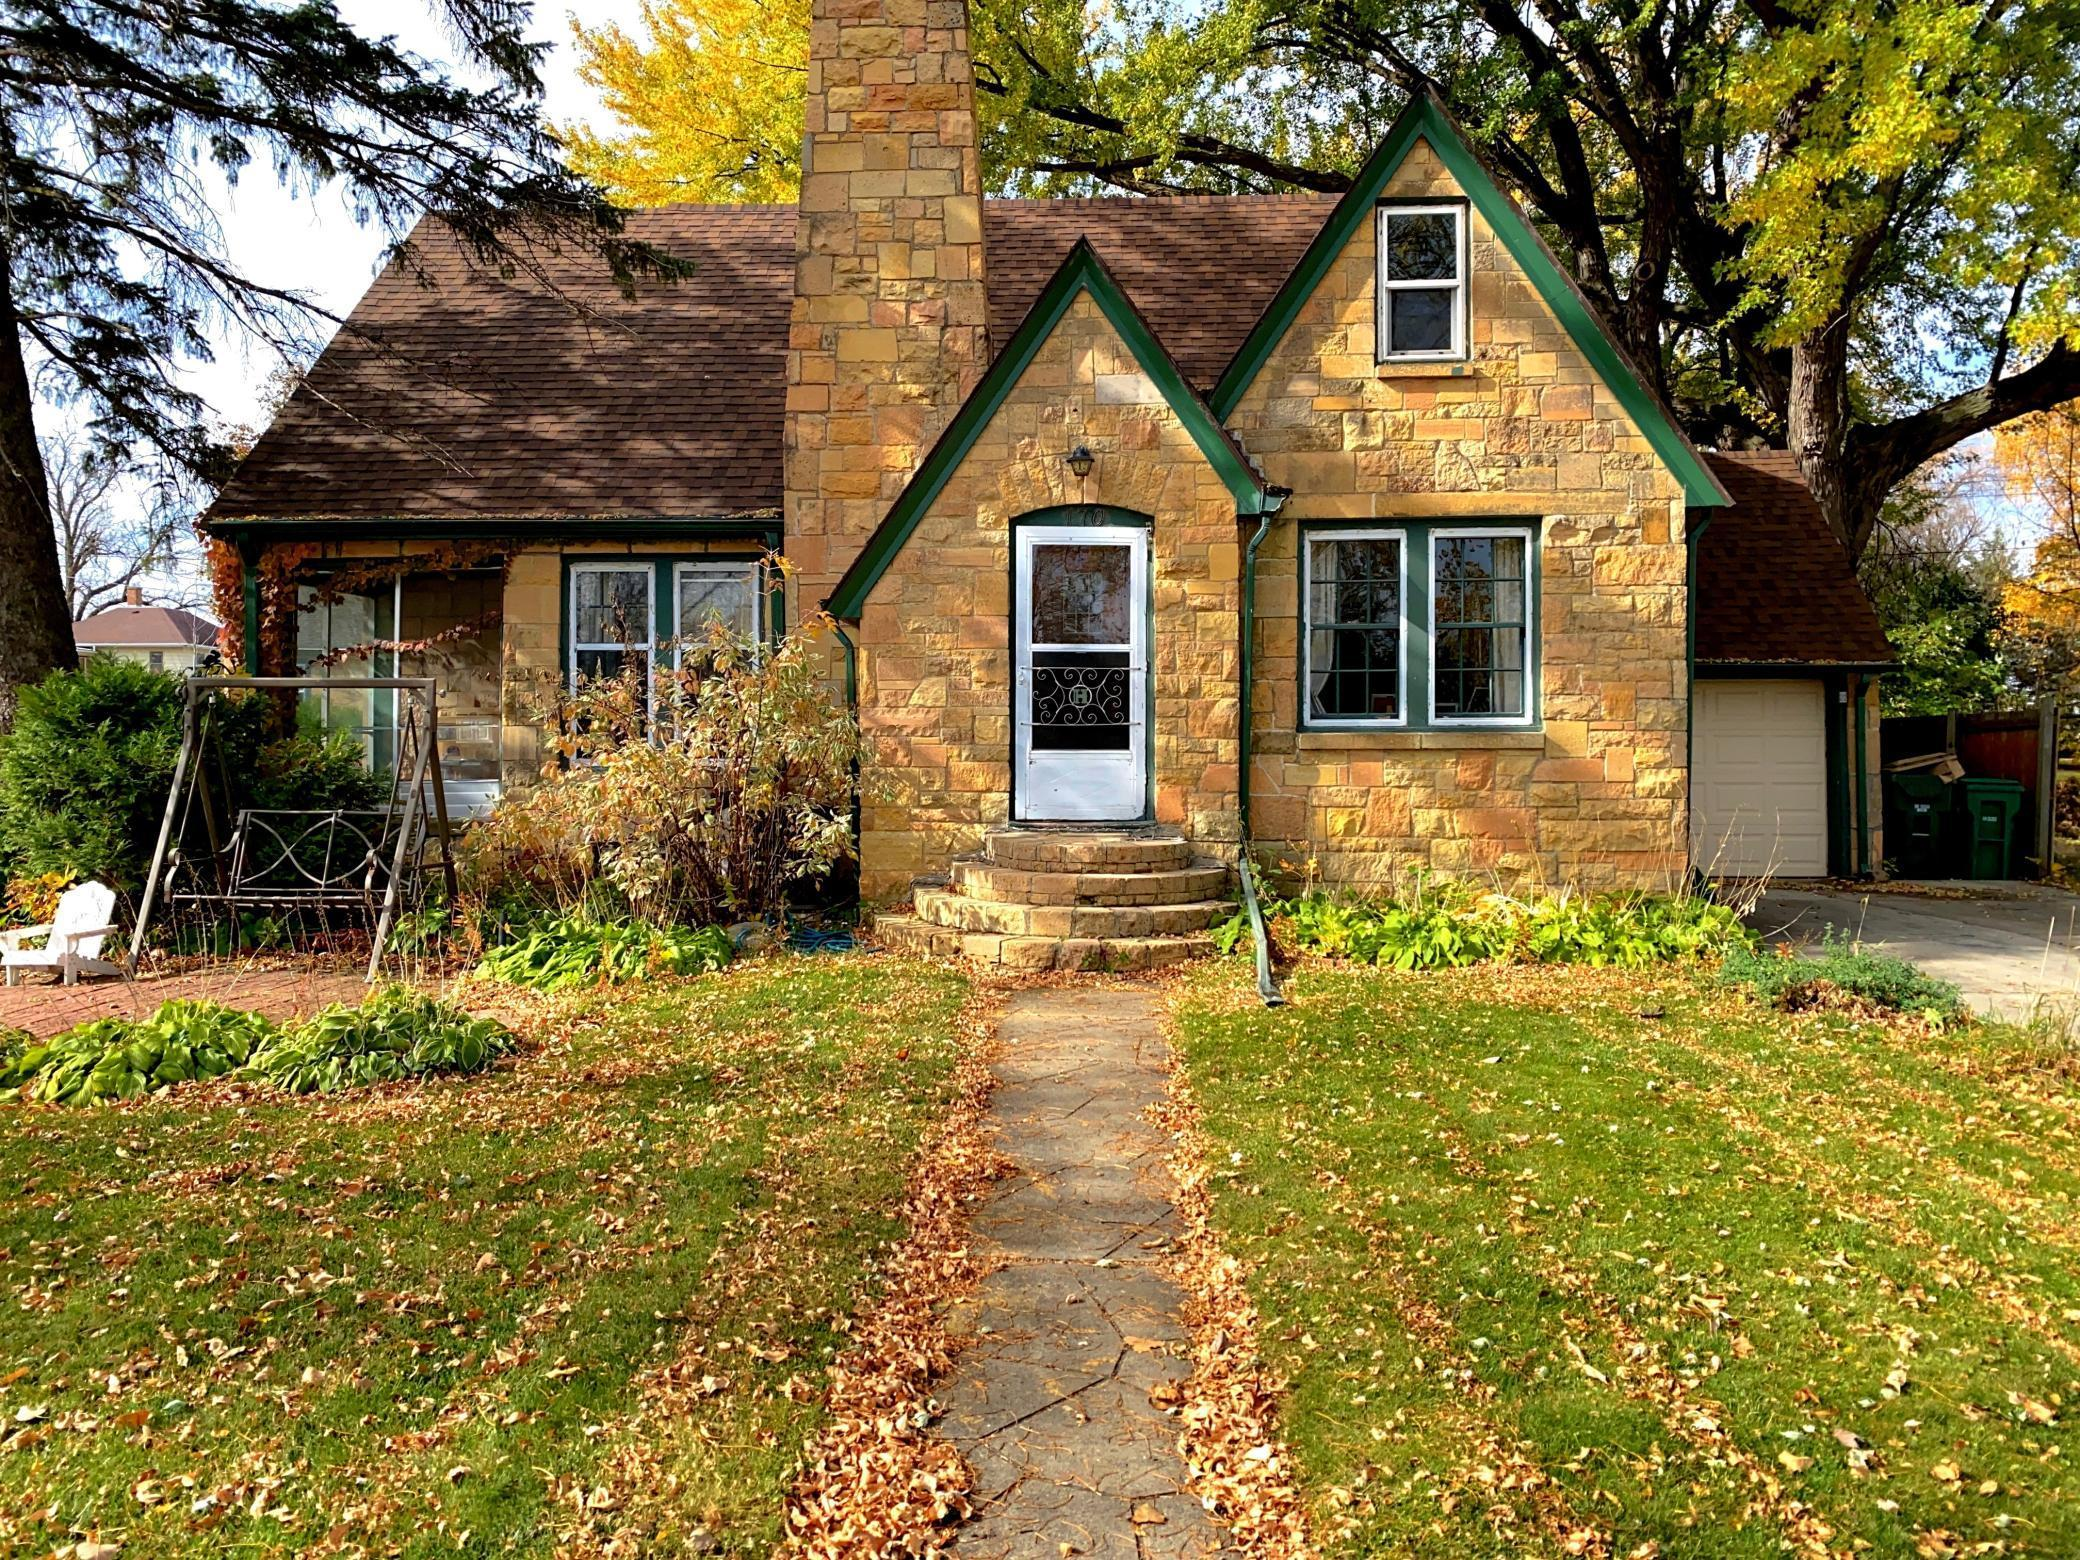 170 1st Street S Property Photo - Winsted, MN real estate listing